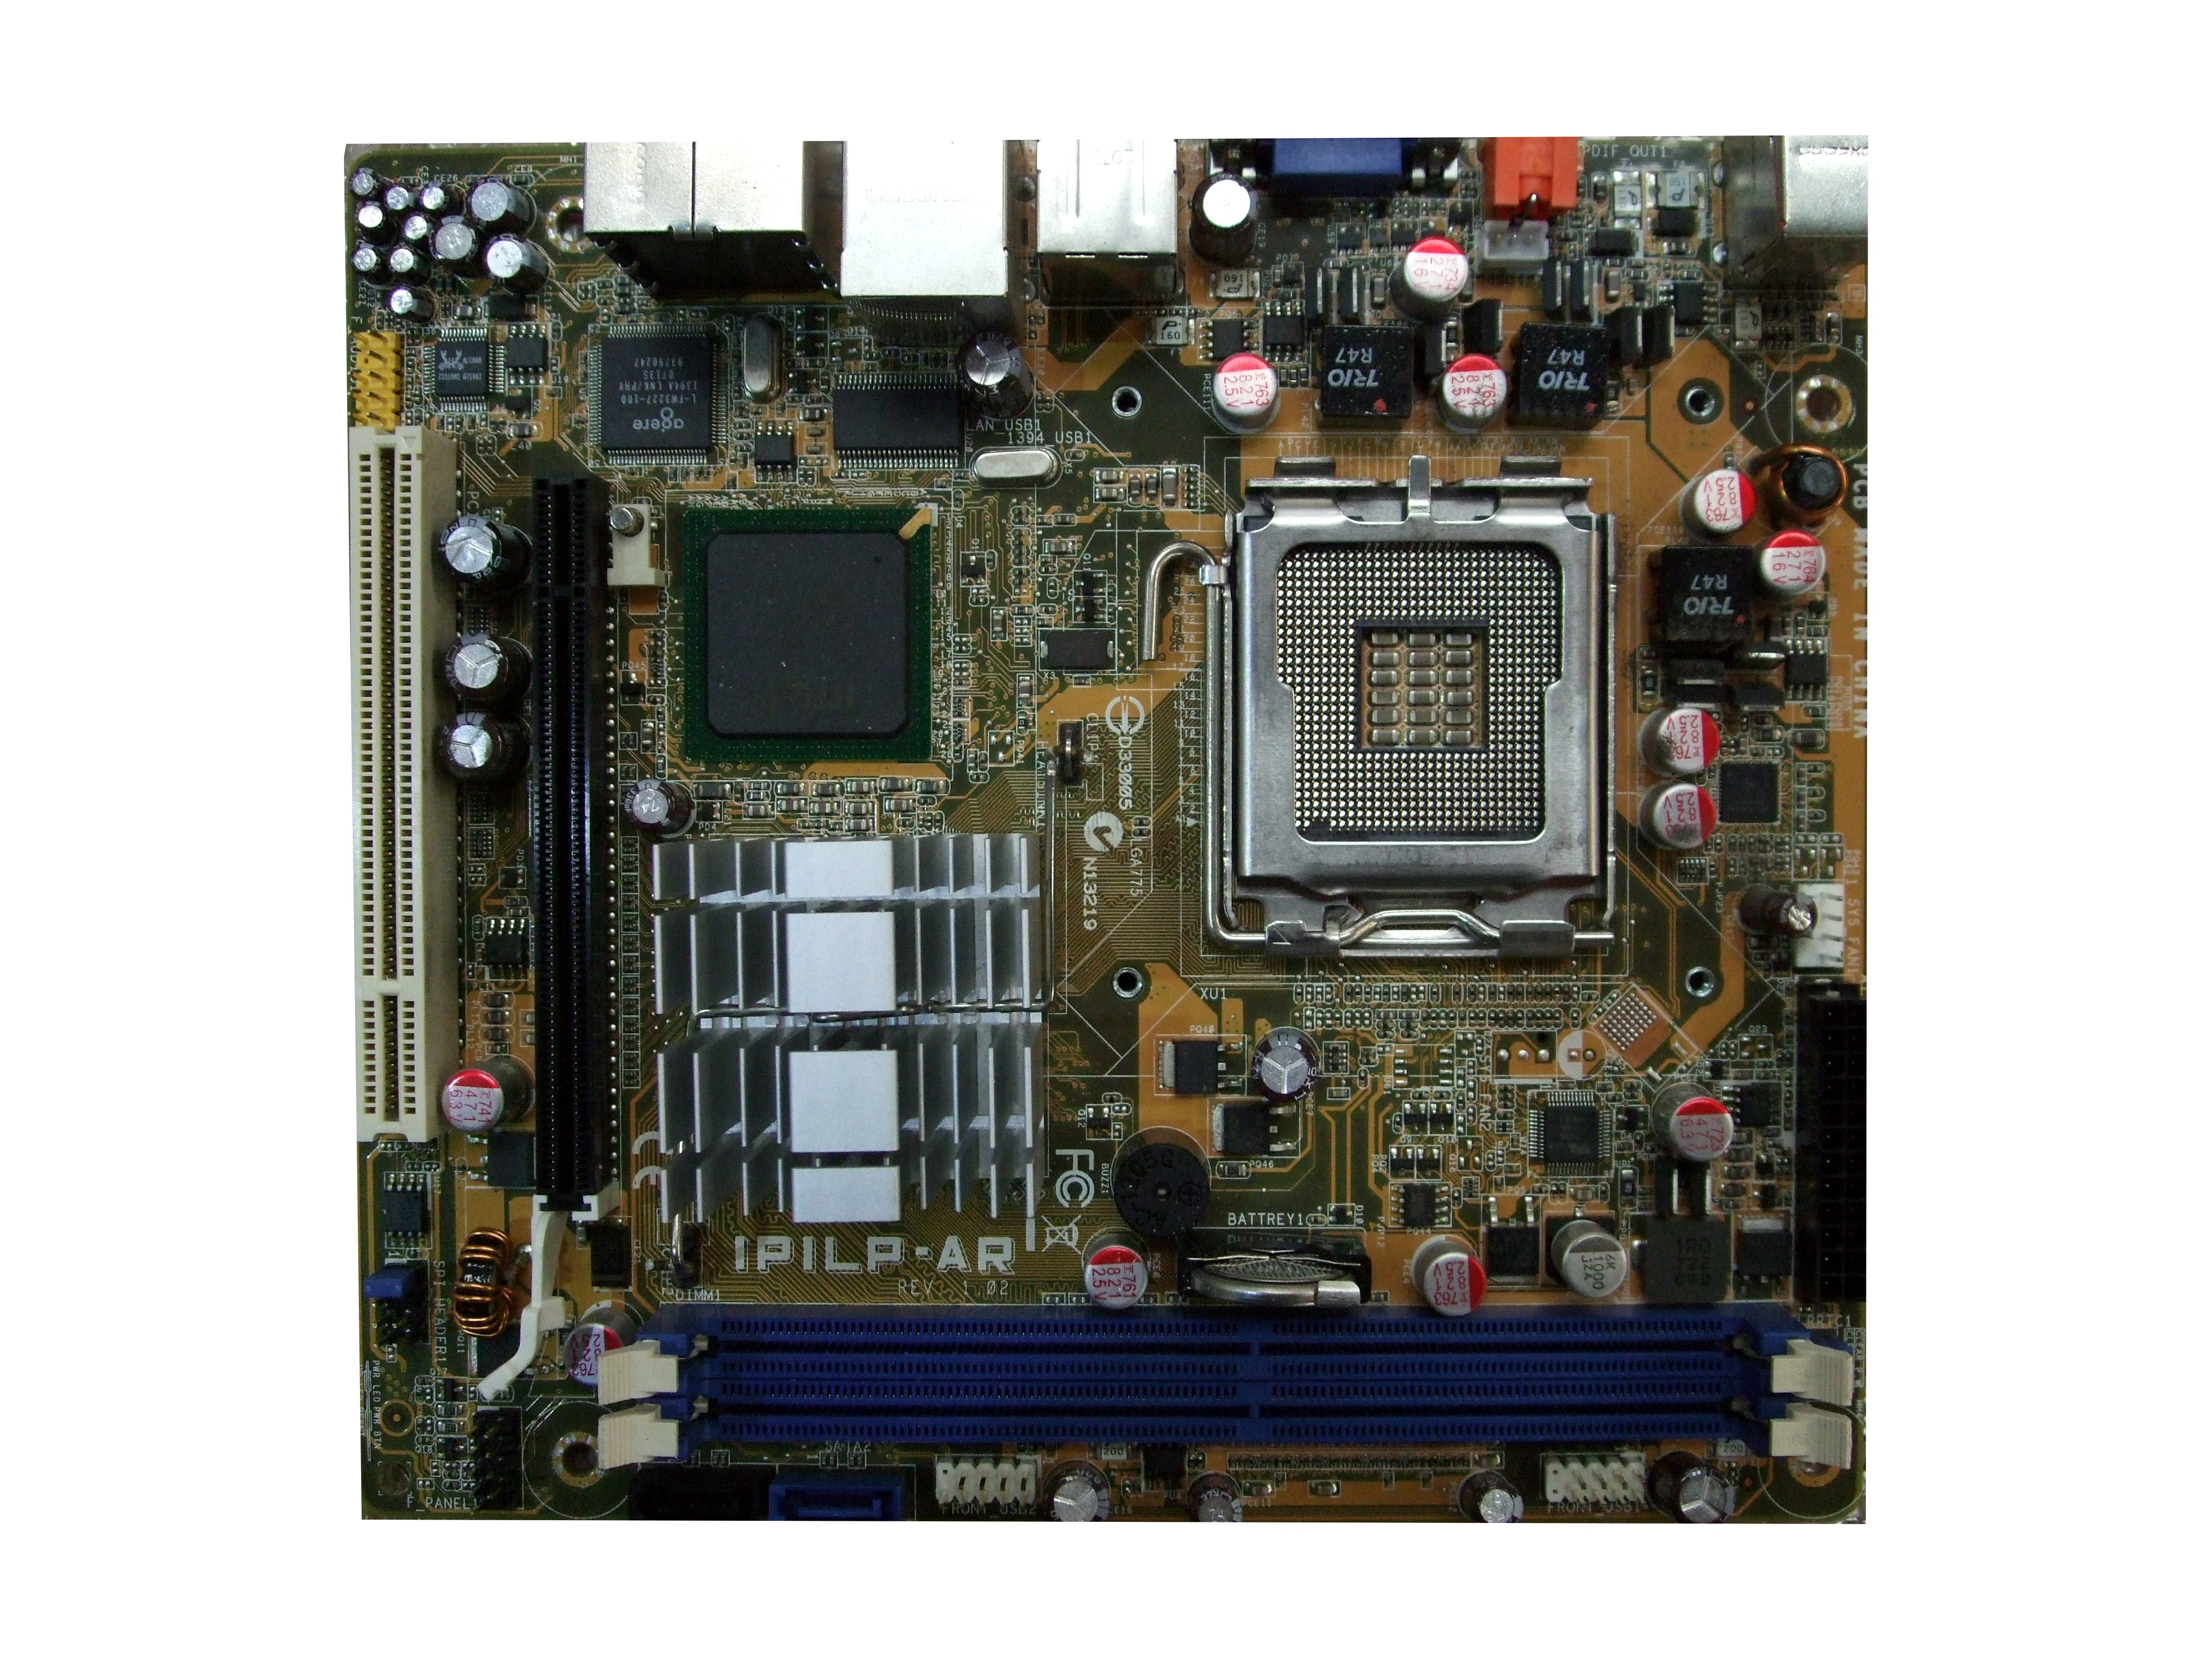 UNTESTED Foxconn ASUS IPILP-AR Micro ATX 775 Motherboard